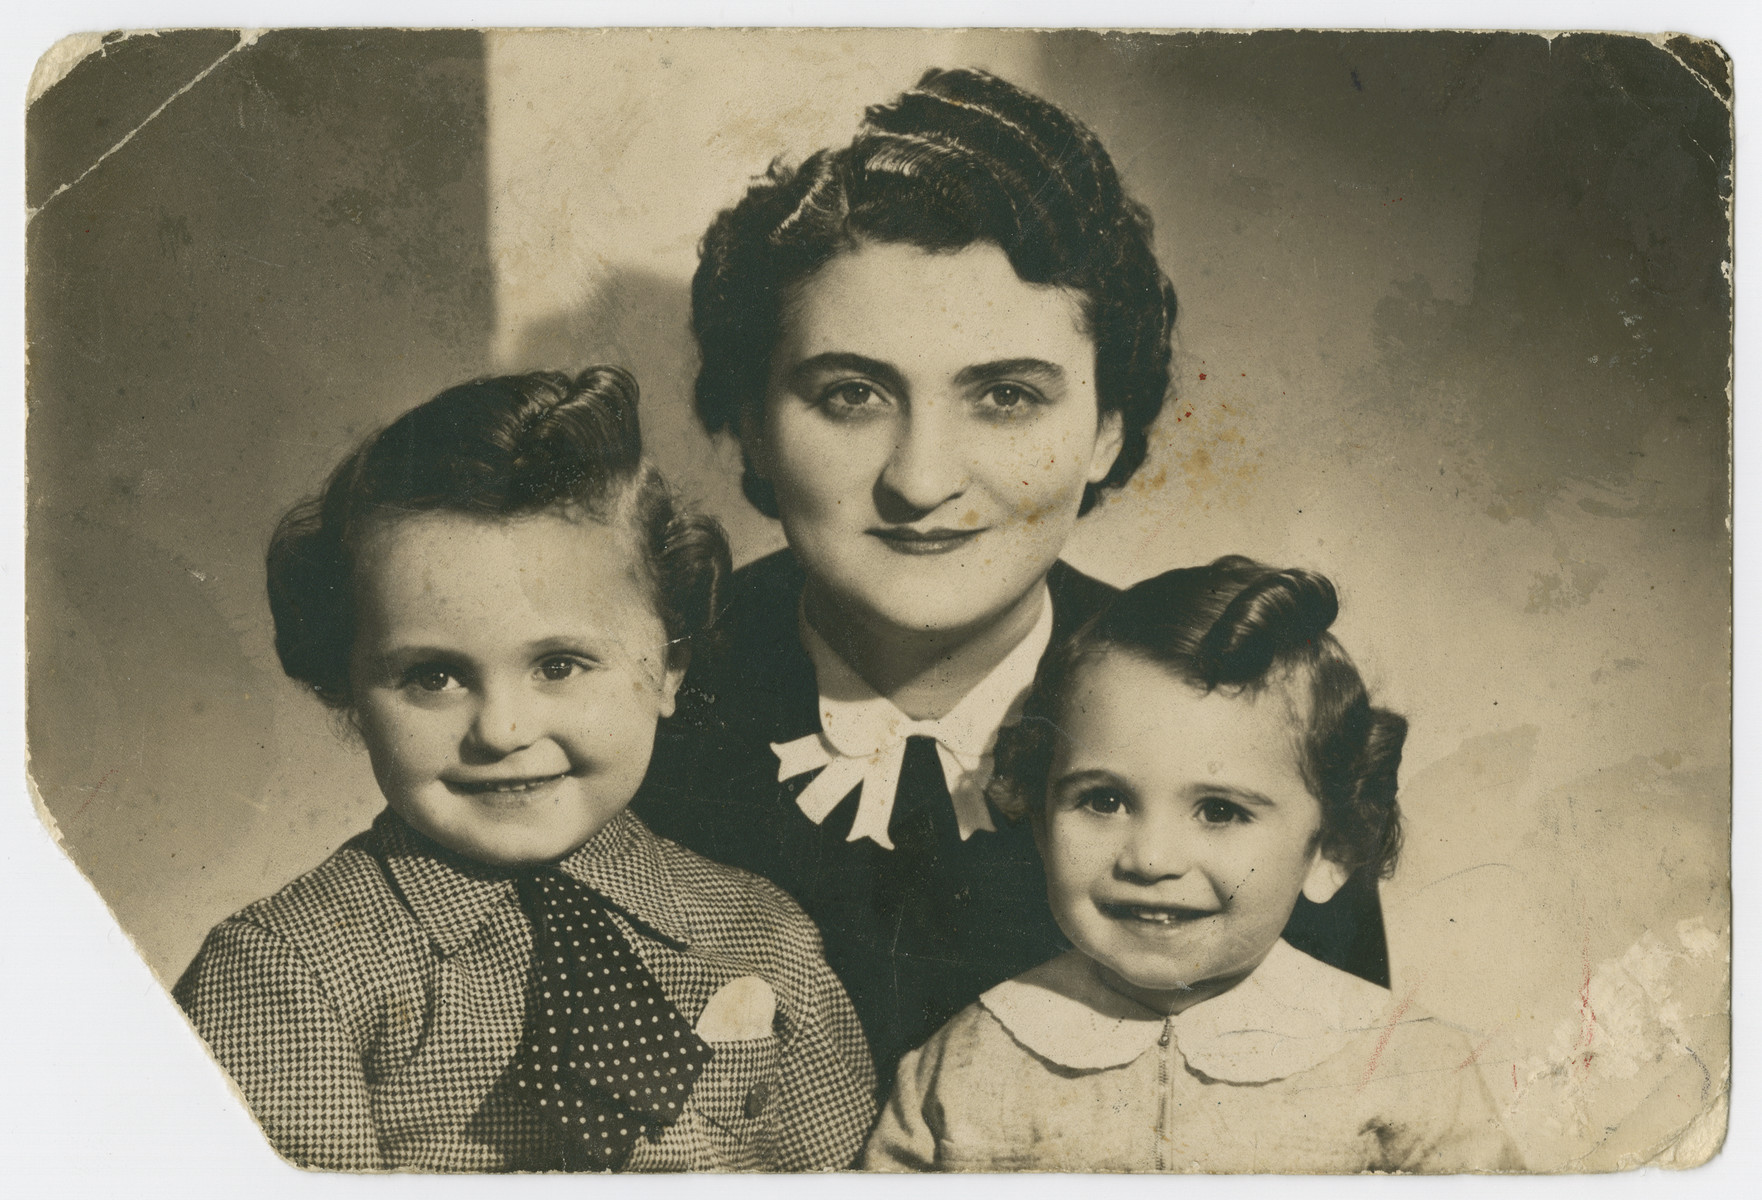 Studio portrait of Frymetta Hochglaube with her two children, Jacques (left) and Nestor (right), taken shortly before going into hiding.